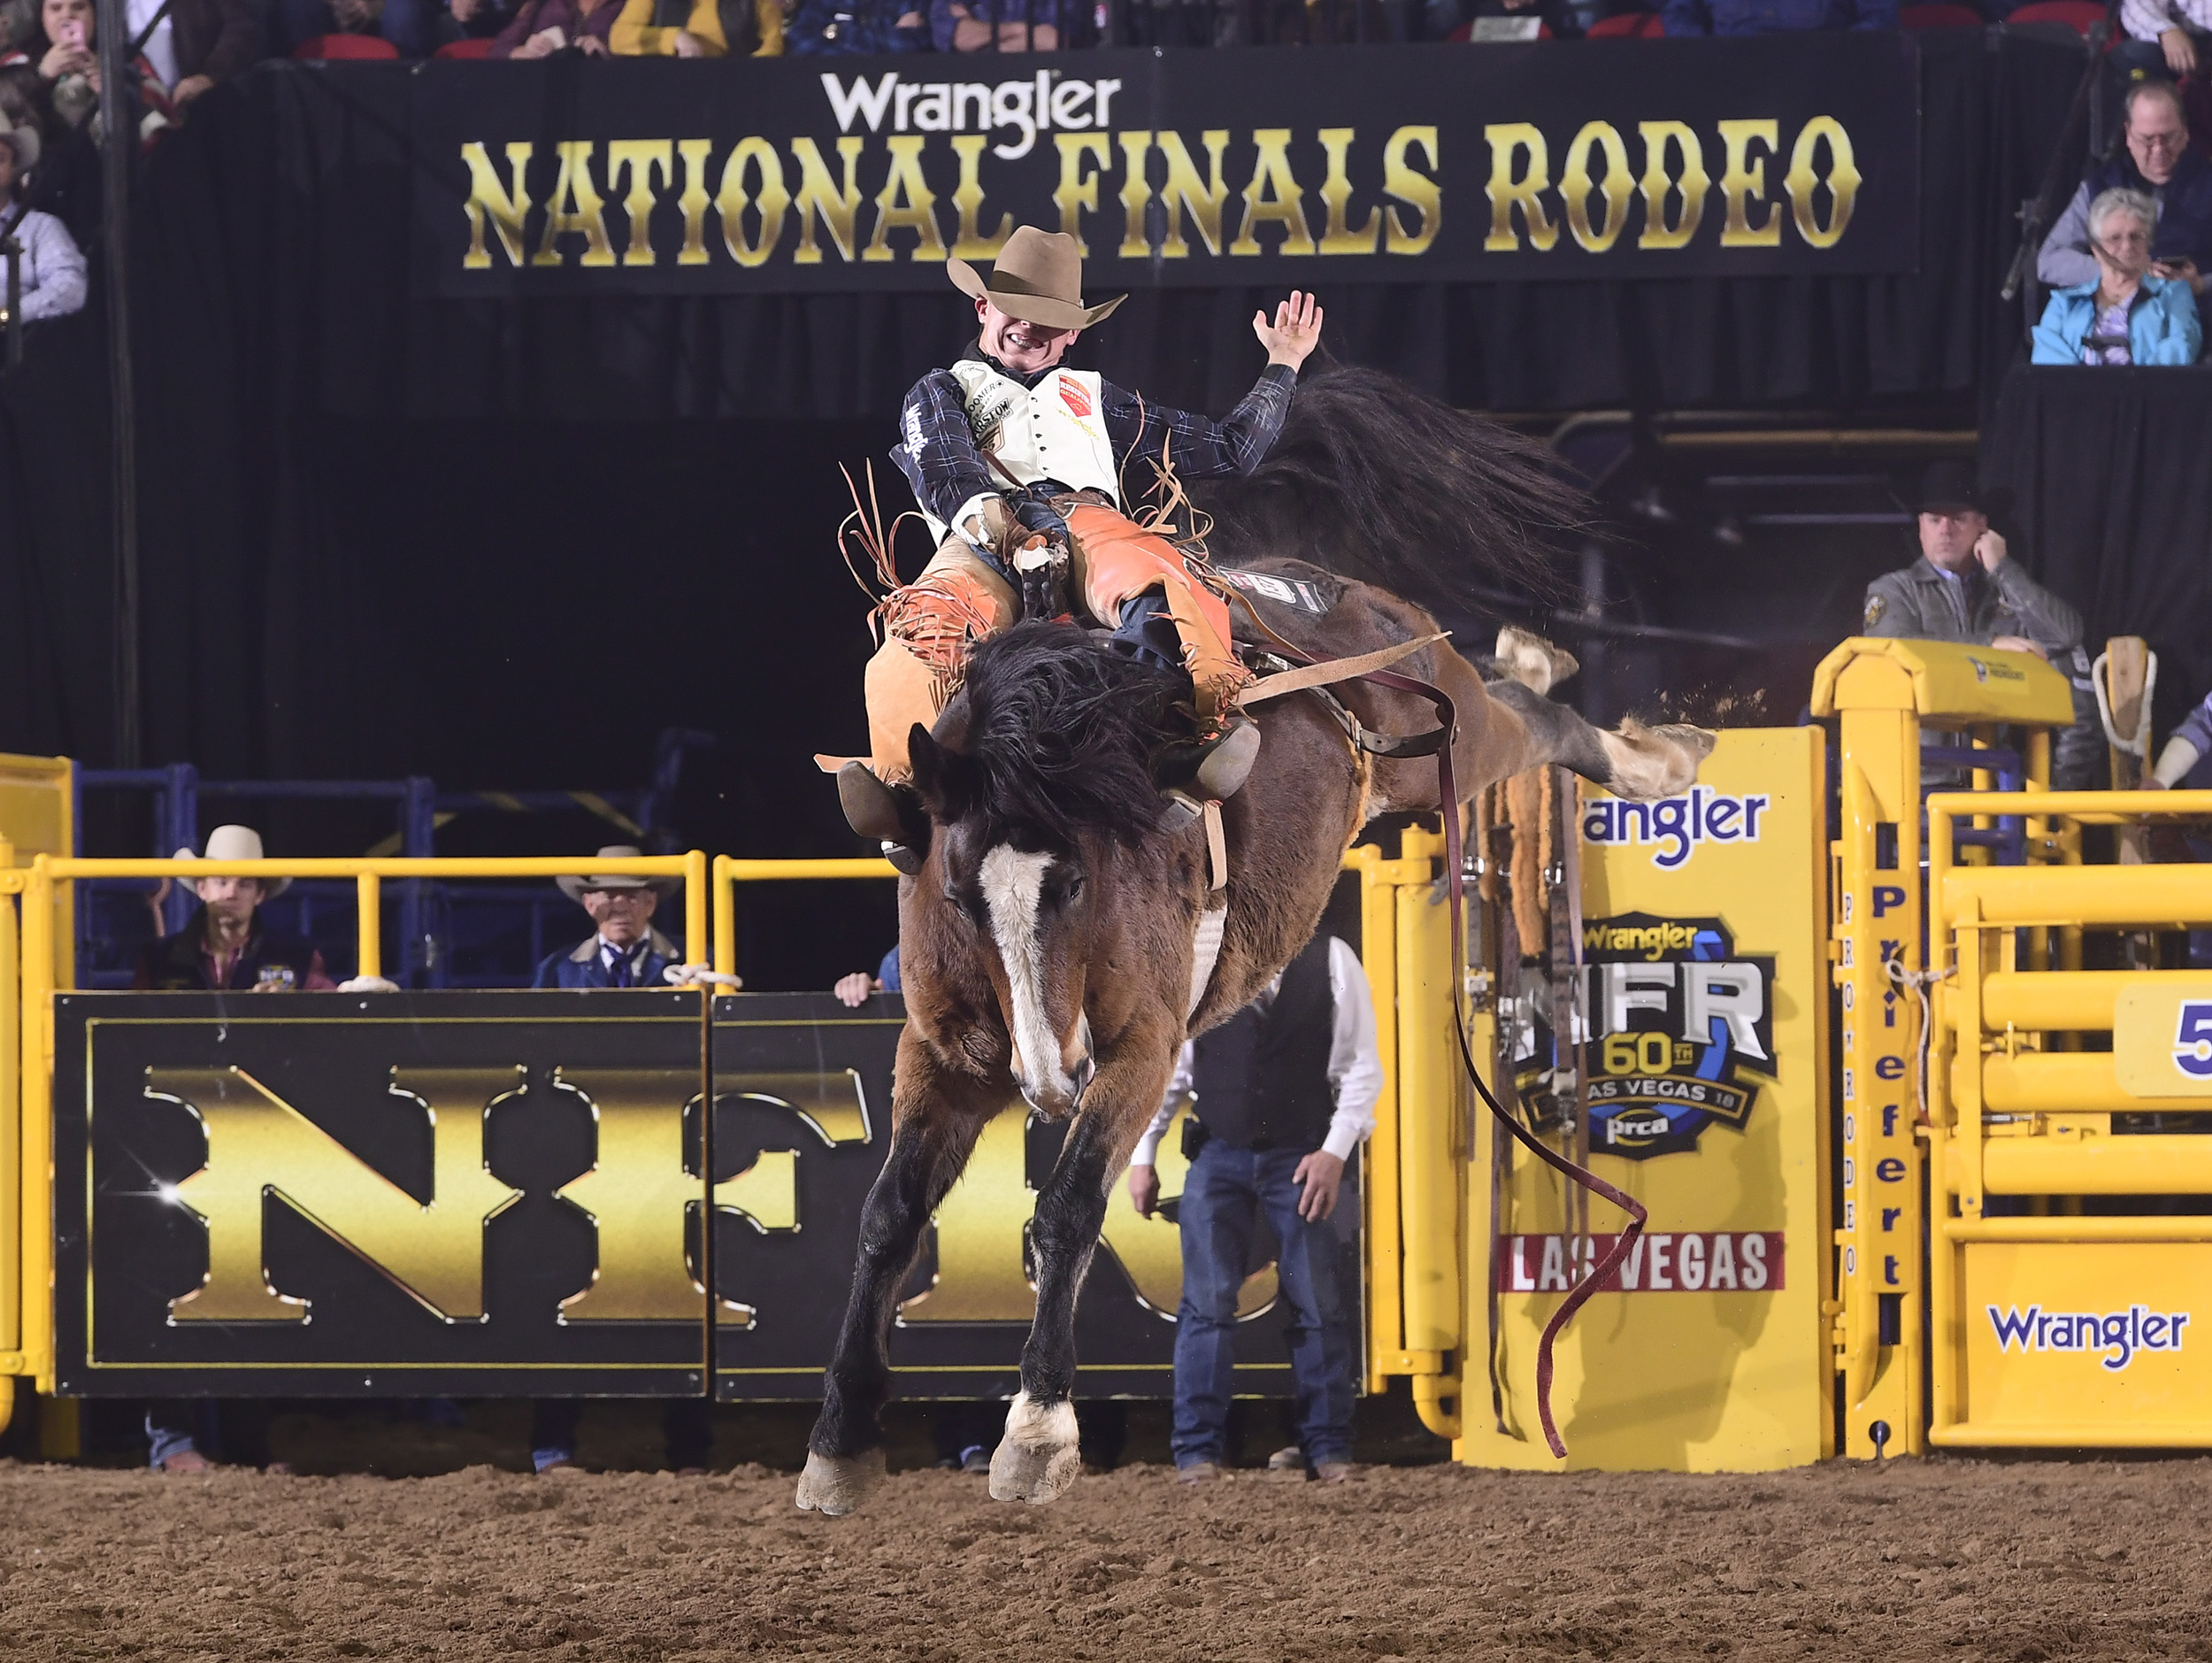 Clayton Biglow rides Frontier Rodeo's Big Night for 86.5 points to finish in a tie for fourth place in Wednesday's seventh go-round of the National Finals Rodeo. (PRCA PRORODEO PHOTO BY JAMES PHIFER)